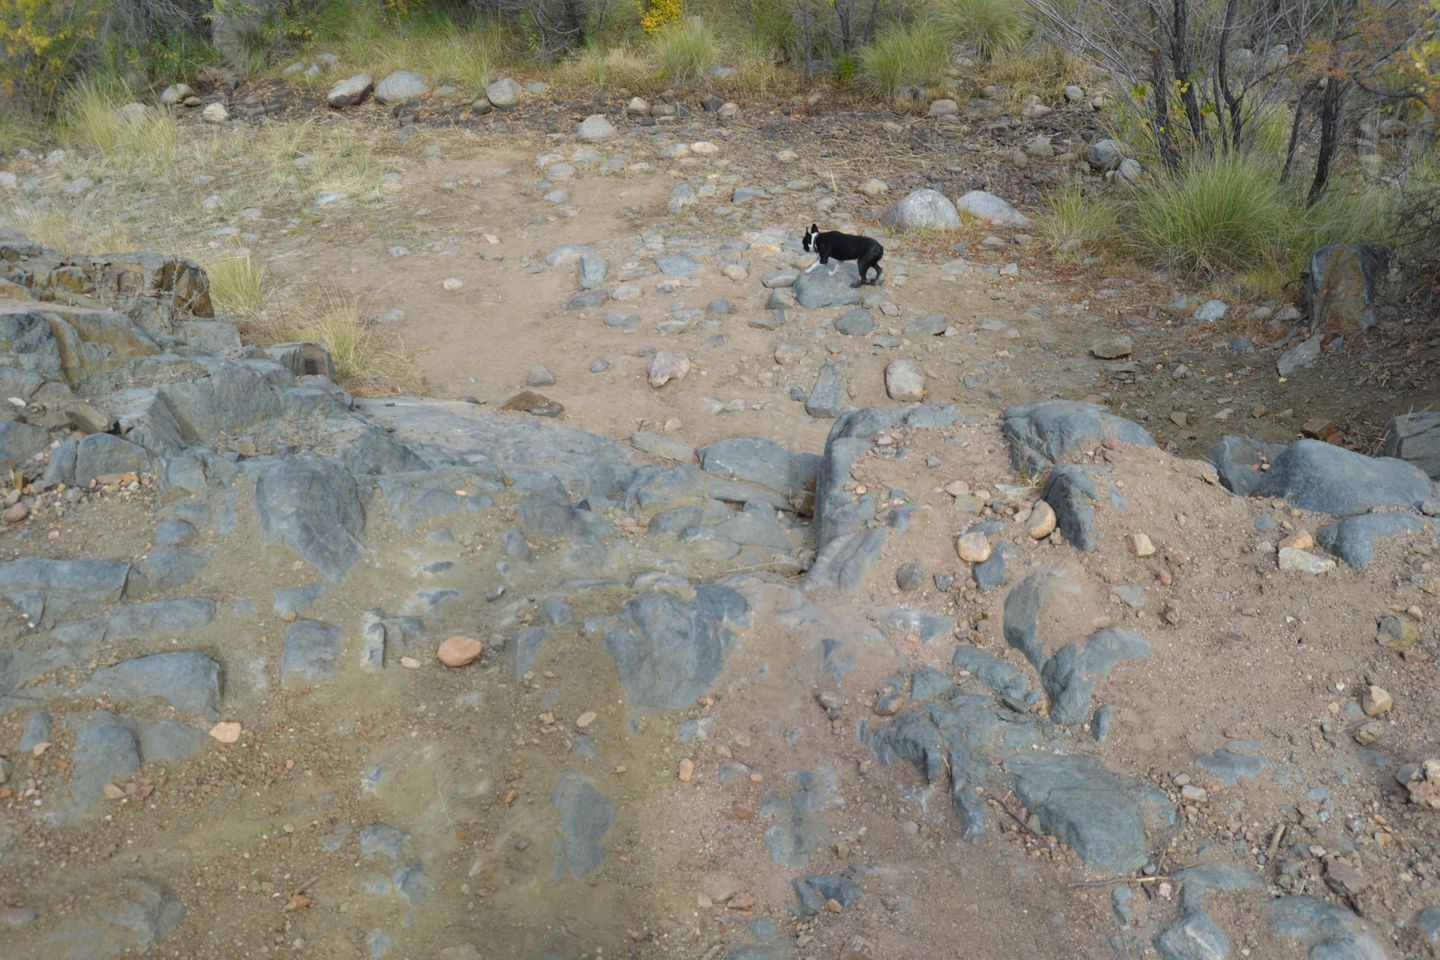 Charouleau Gap / FR# 736 - Waypoint 26: The Steps (Optional)